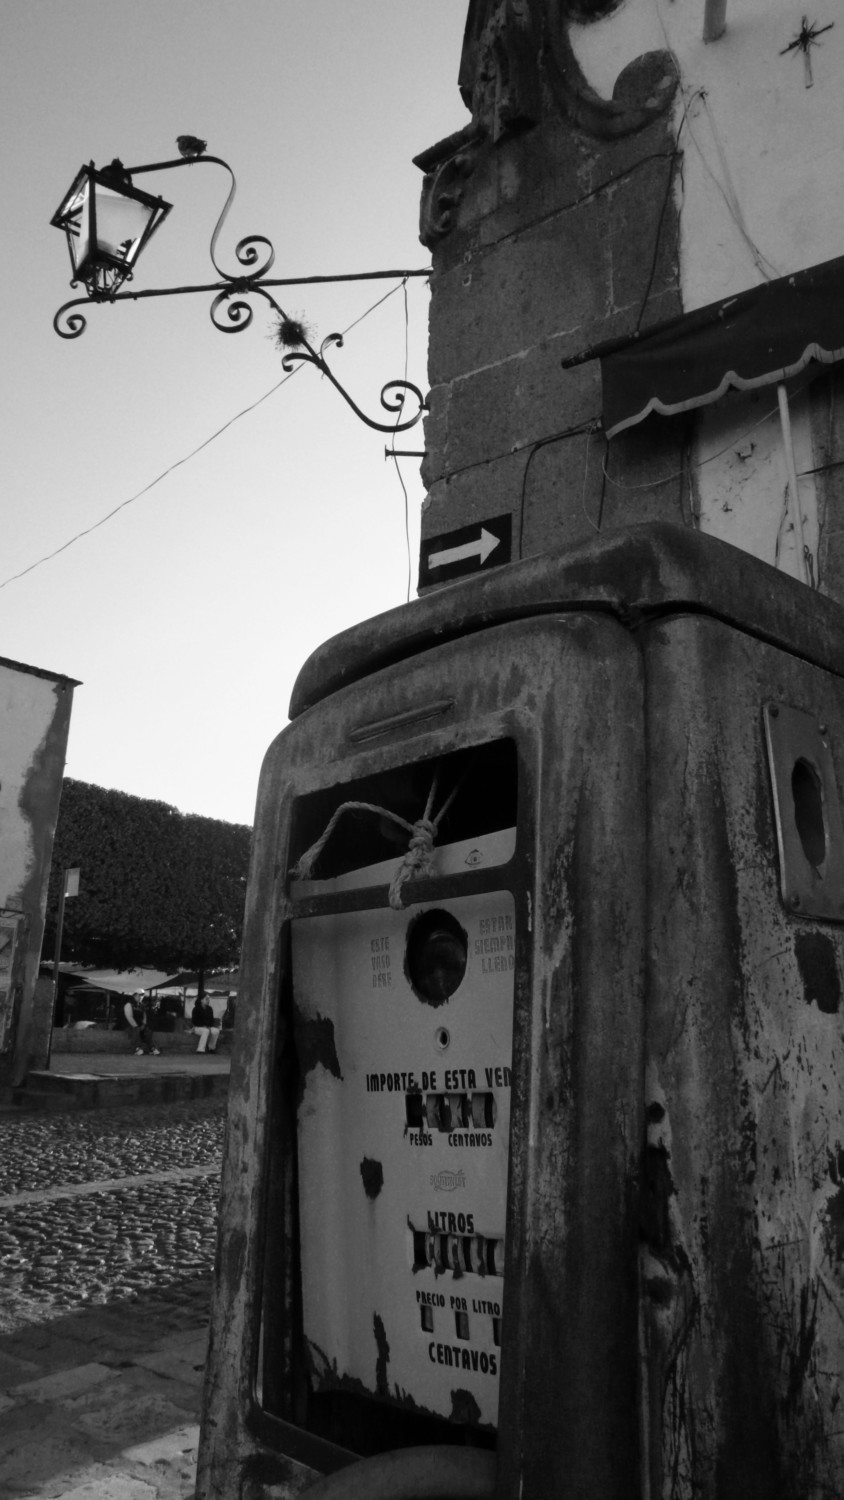 Gas pump, Gruene, Texas, January 2012